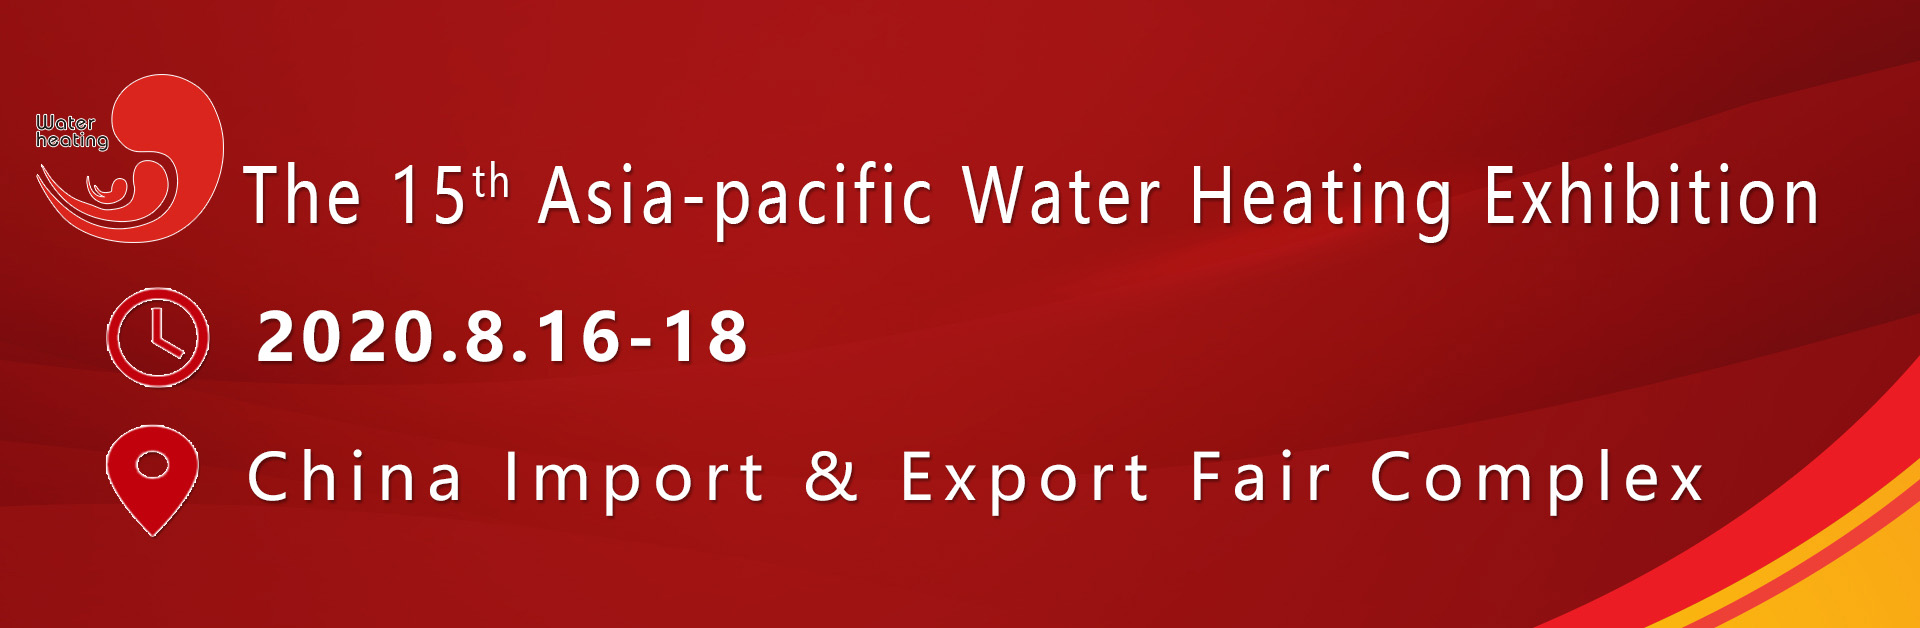 Asia-Pacific Water Heating & Heat Pumps Exhibition 2020 (AWHE 2020)